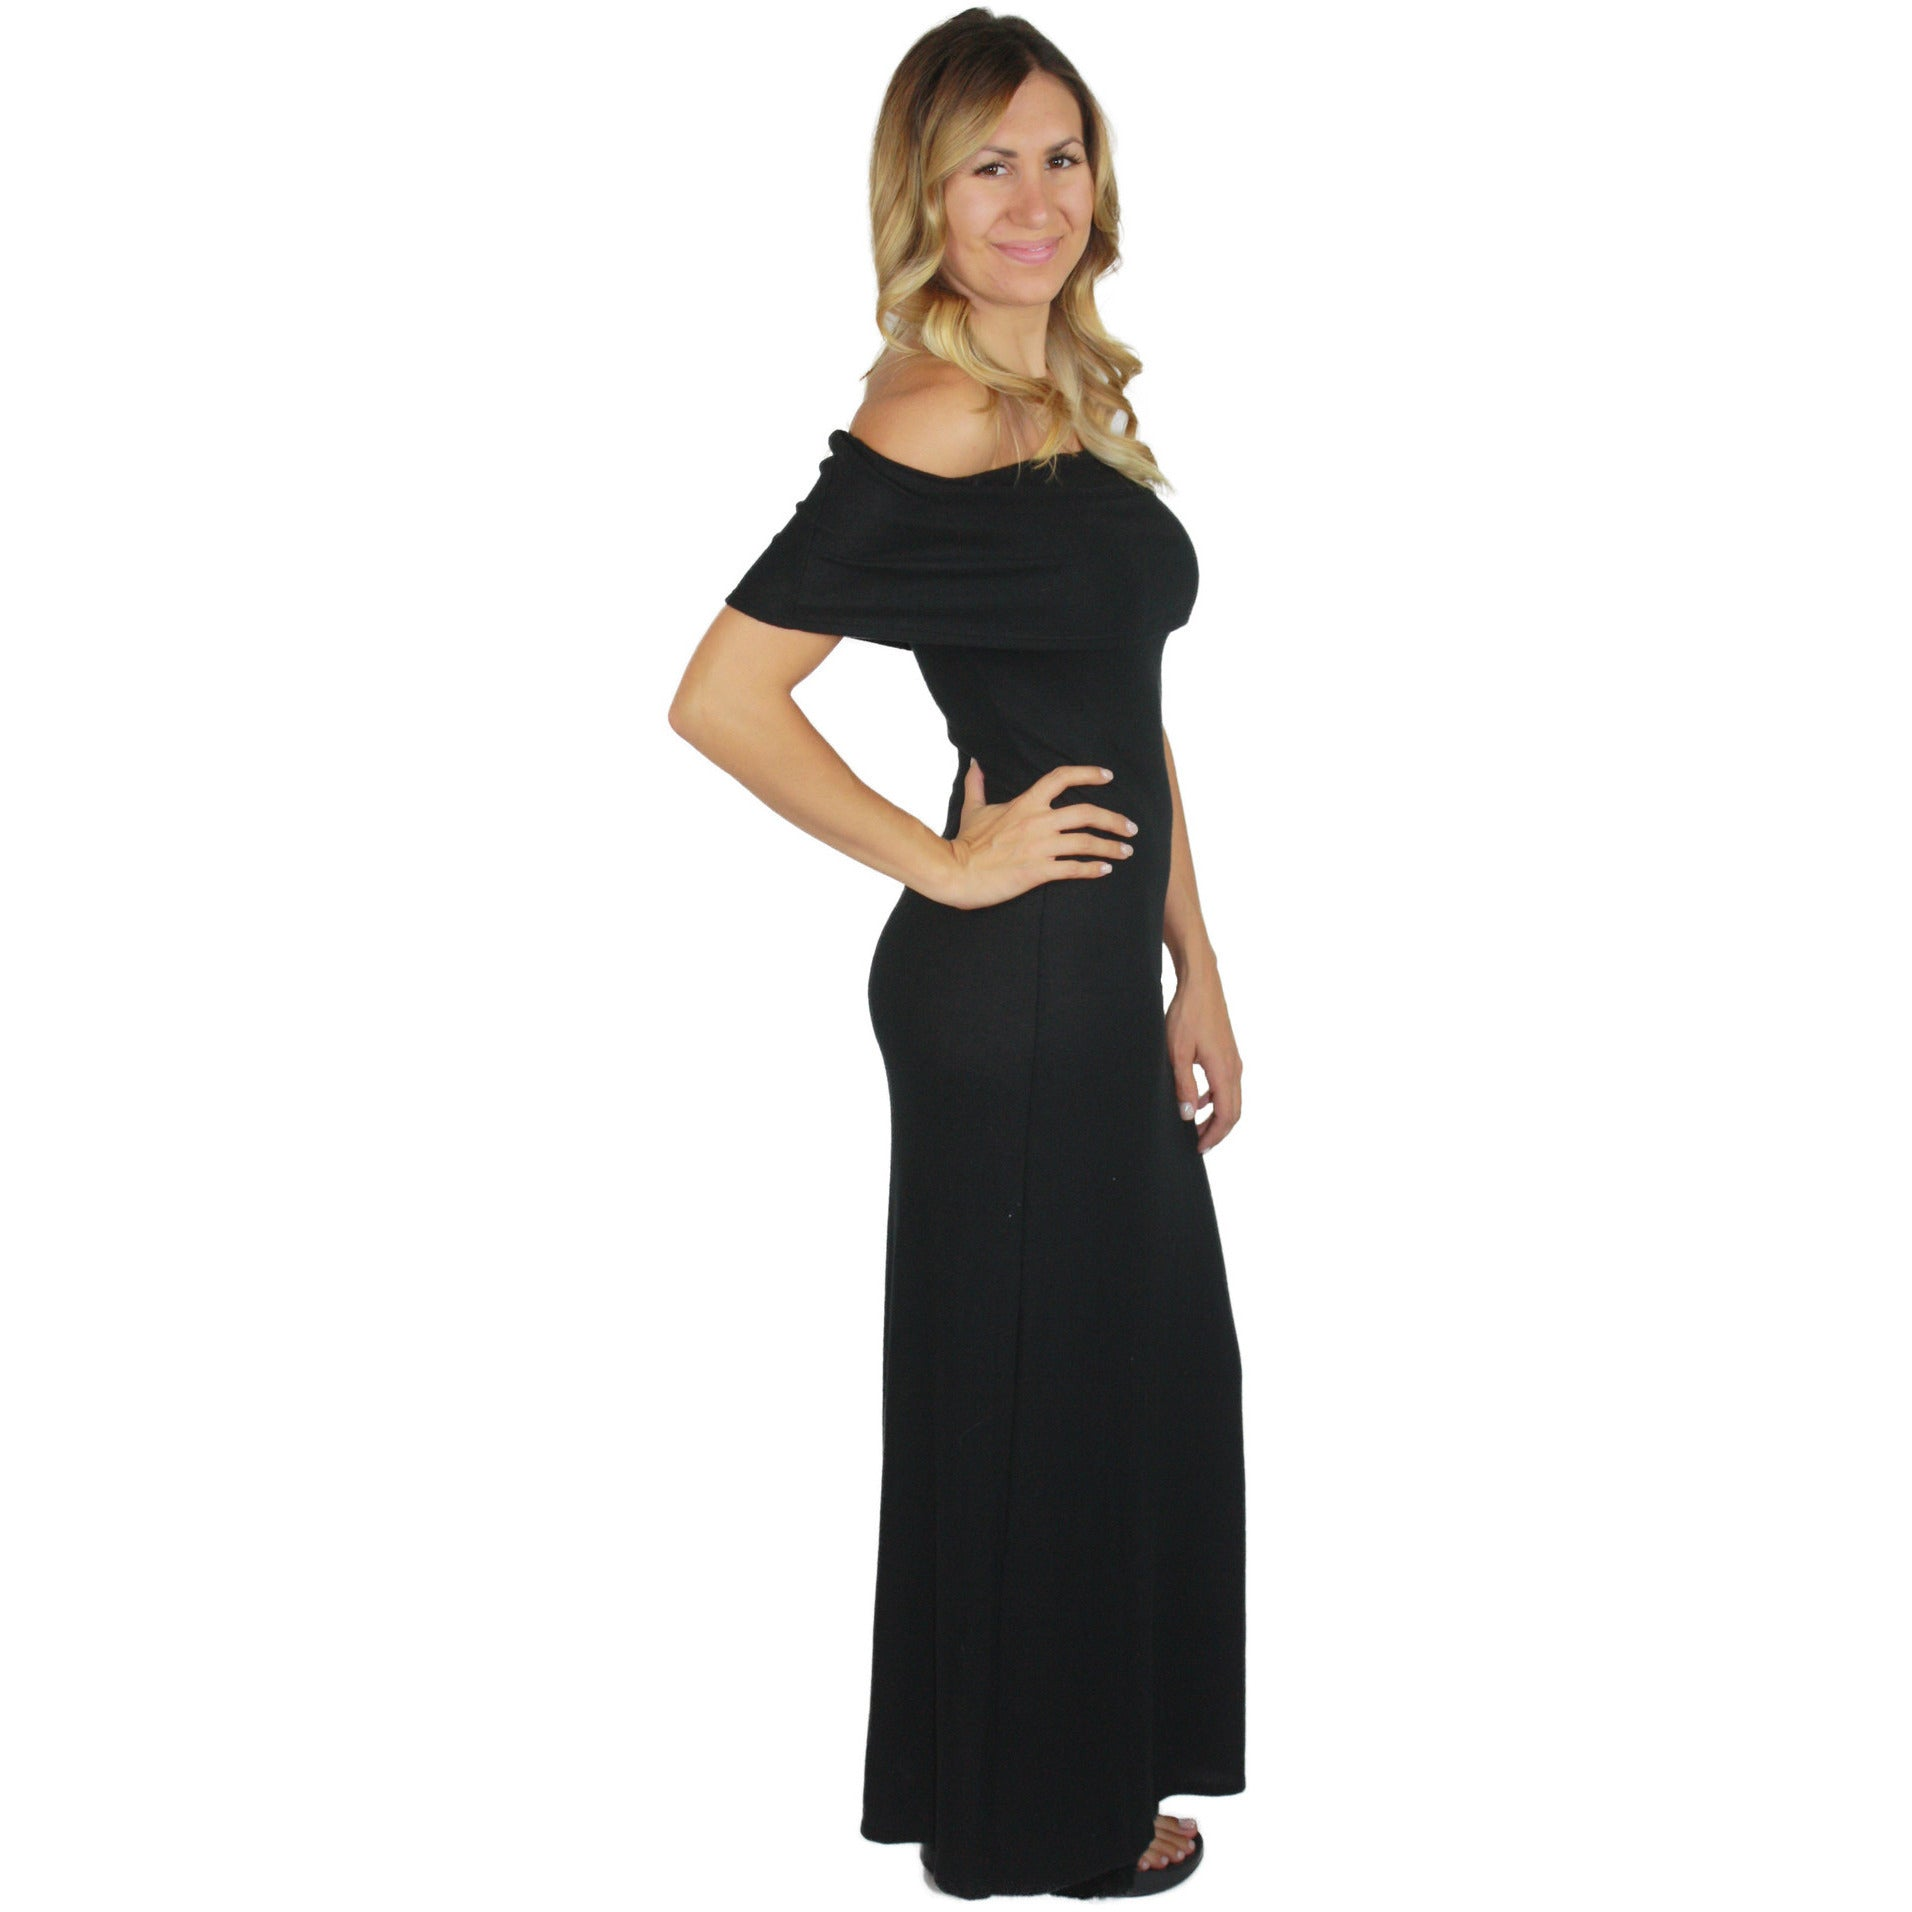 Foldover Off Shoulder Maxi Dress in Black